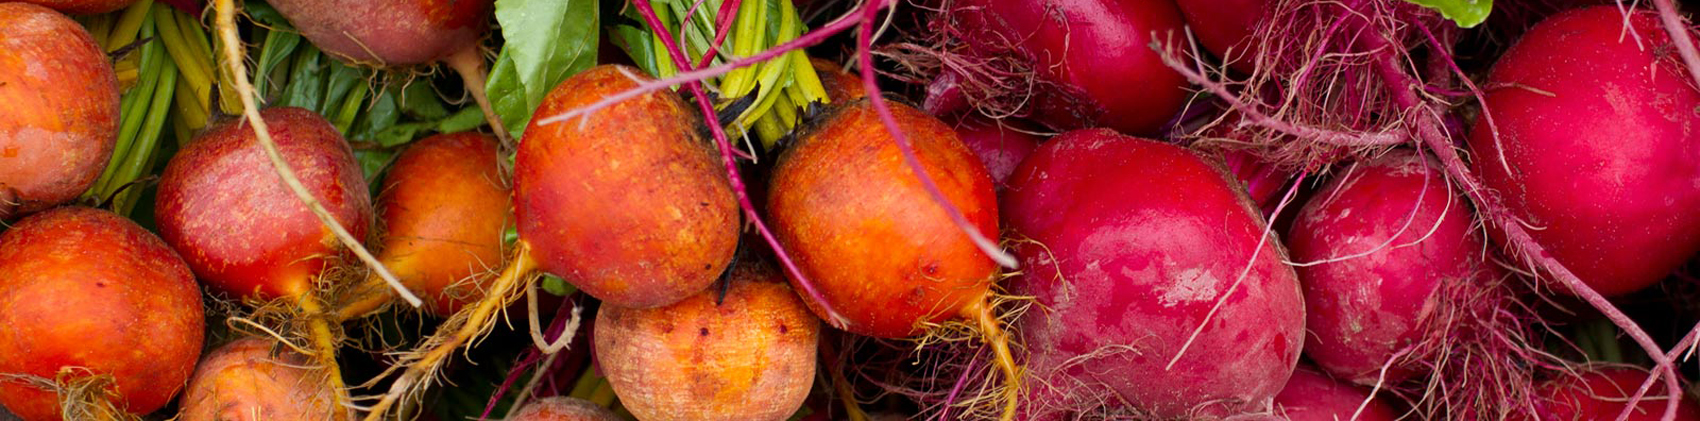 cropped root veggies.jpg